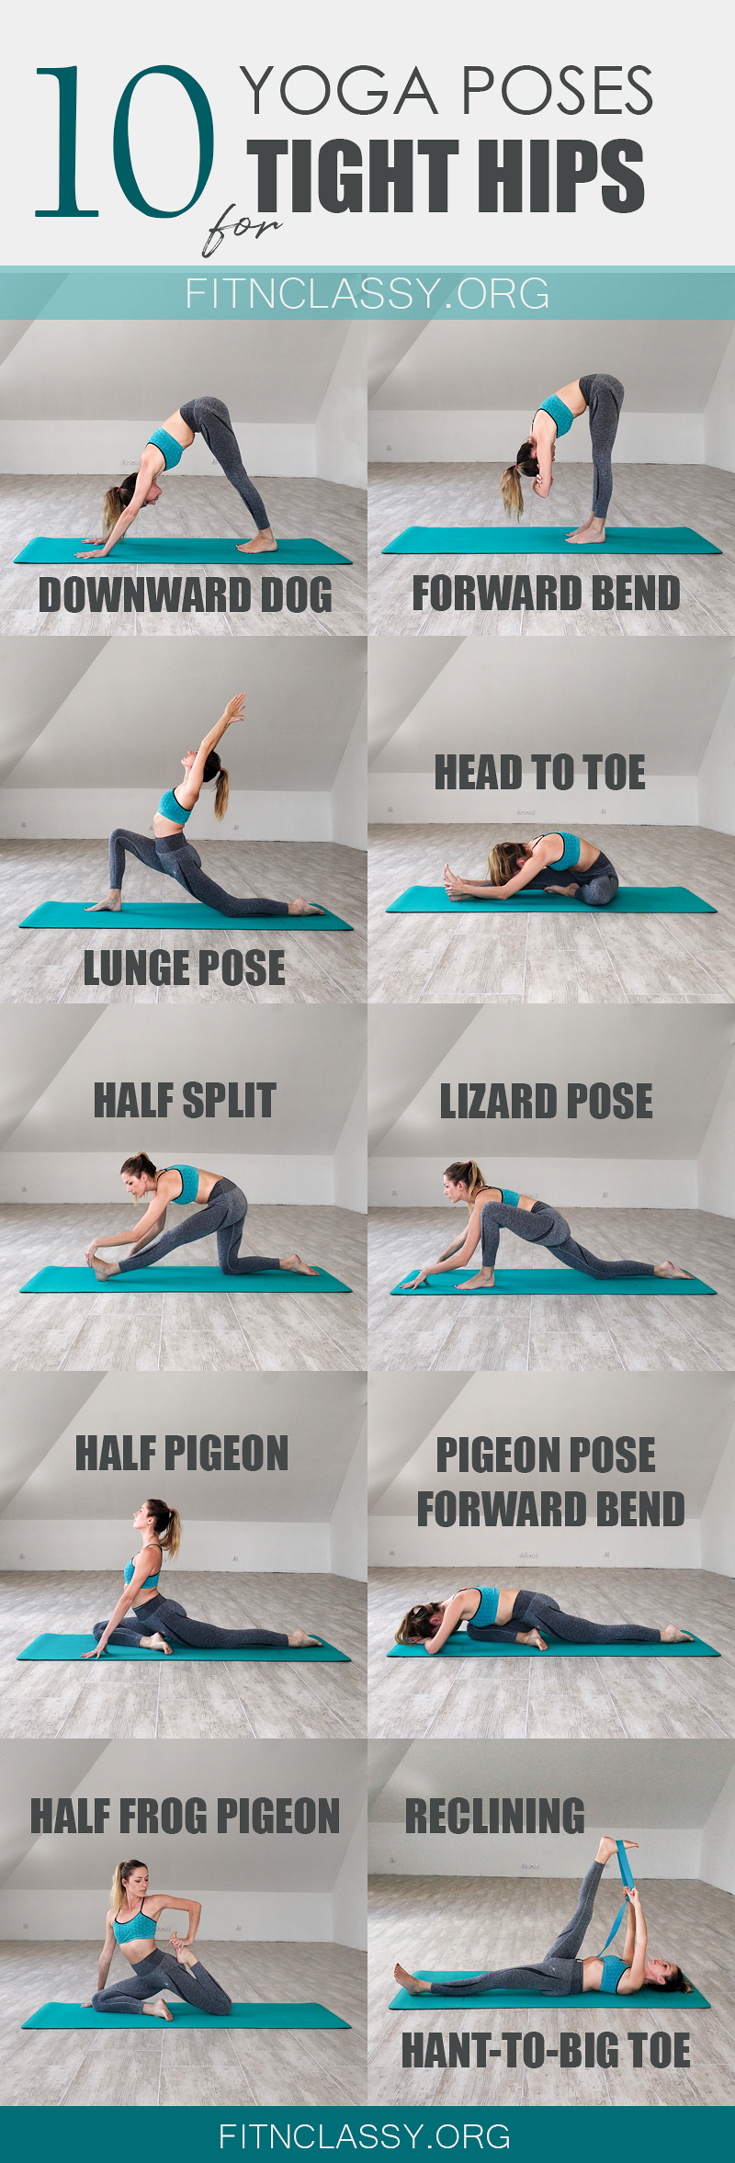 10 yoga poses for tight hips and hamstrings. Great stretching for splits, excellent for runners, athletes and those of you who sit at the desk for most of the day. #yoga #splits #stretching #yogaforhips #hipsandhamstrings #yogaforlegs #flexibility #yogaposes